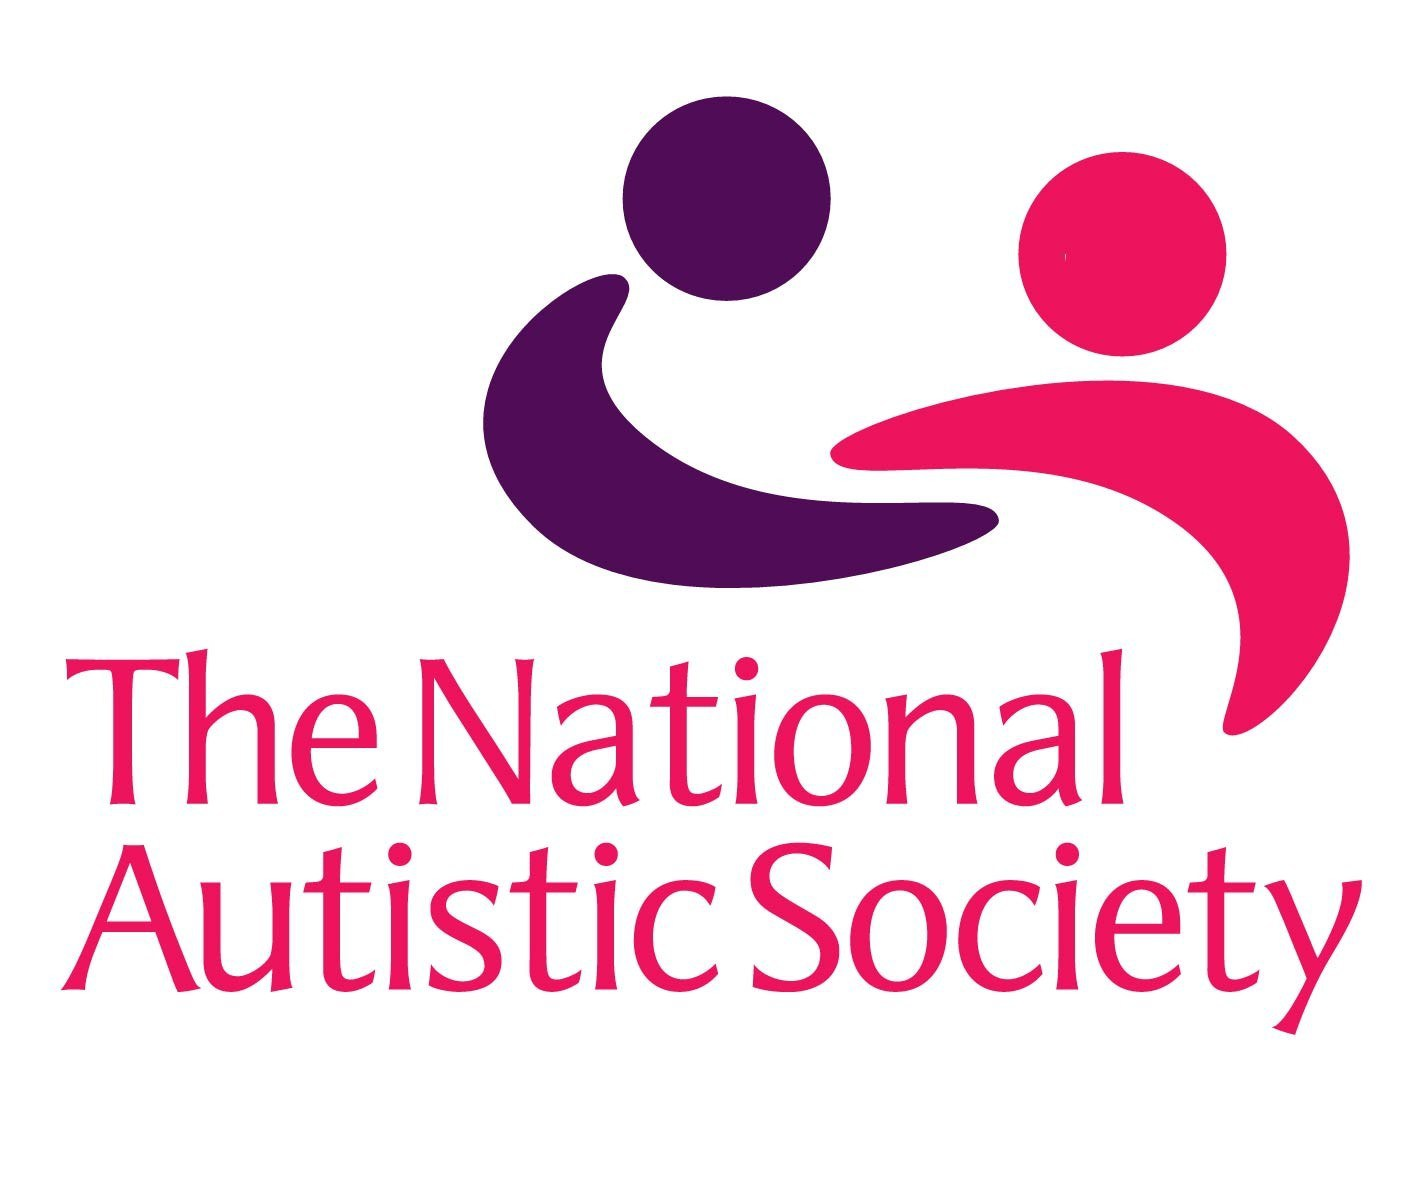 Emma Roberts - The National Autistic Society